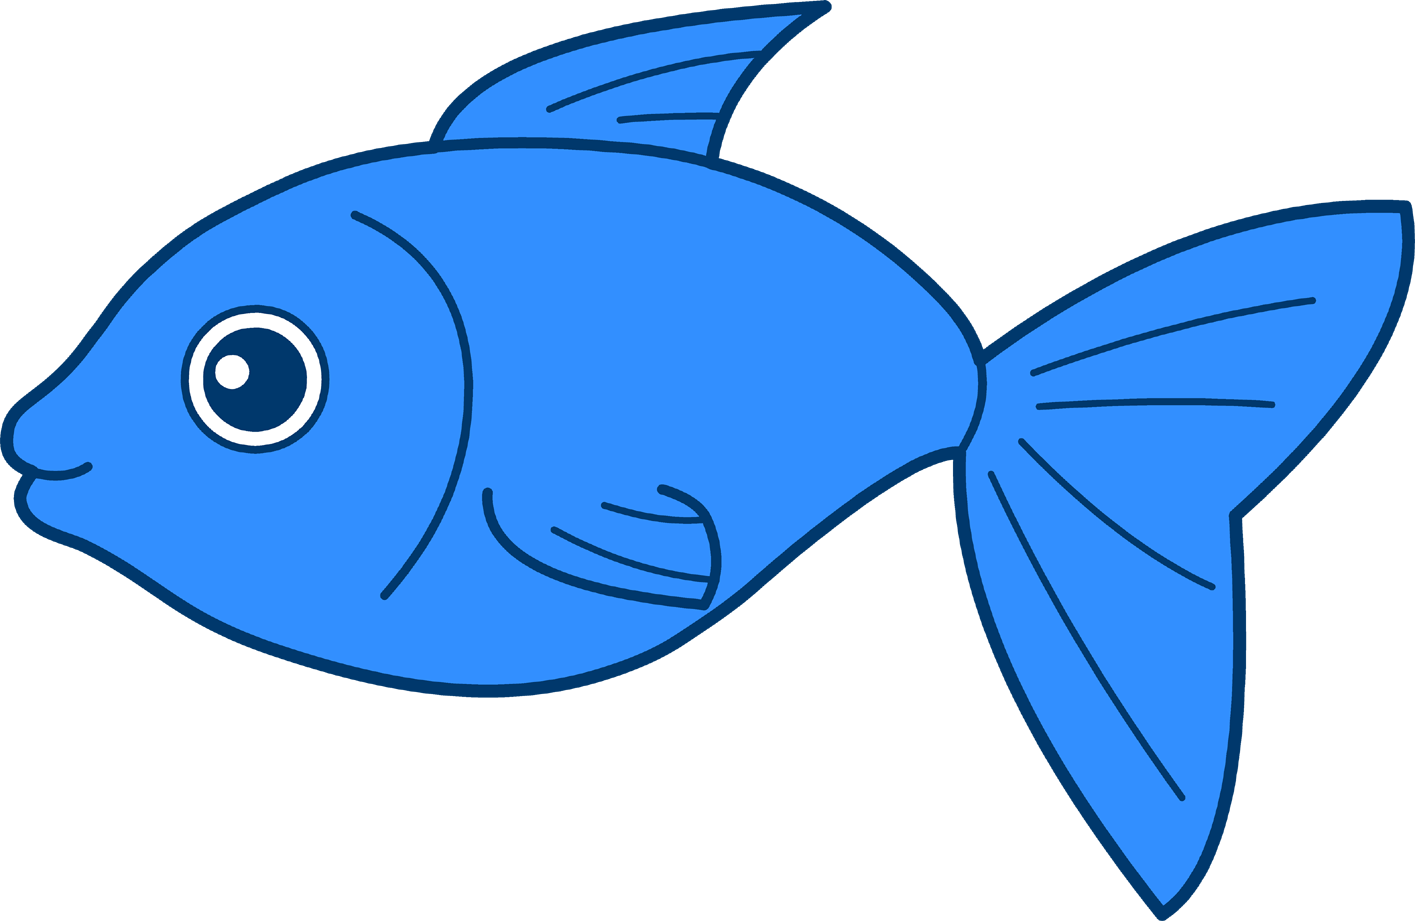 fish clipart for kids at getdrawings com free for personal use rh getdrawings com clip art of fish in a jar clip art of fish in a jar